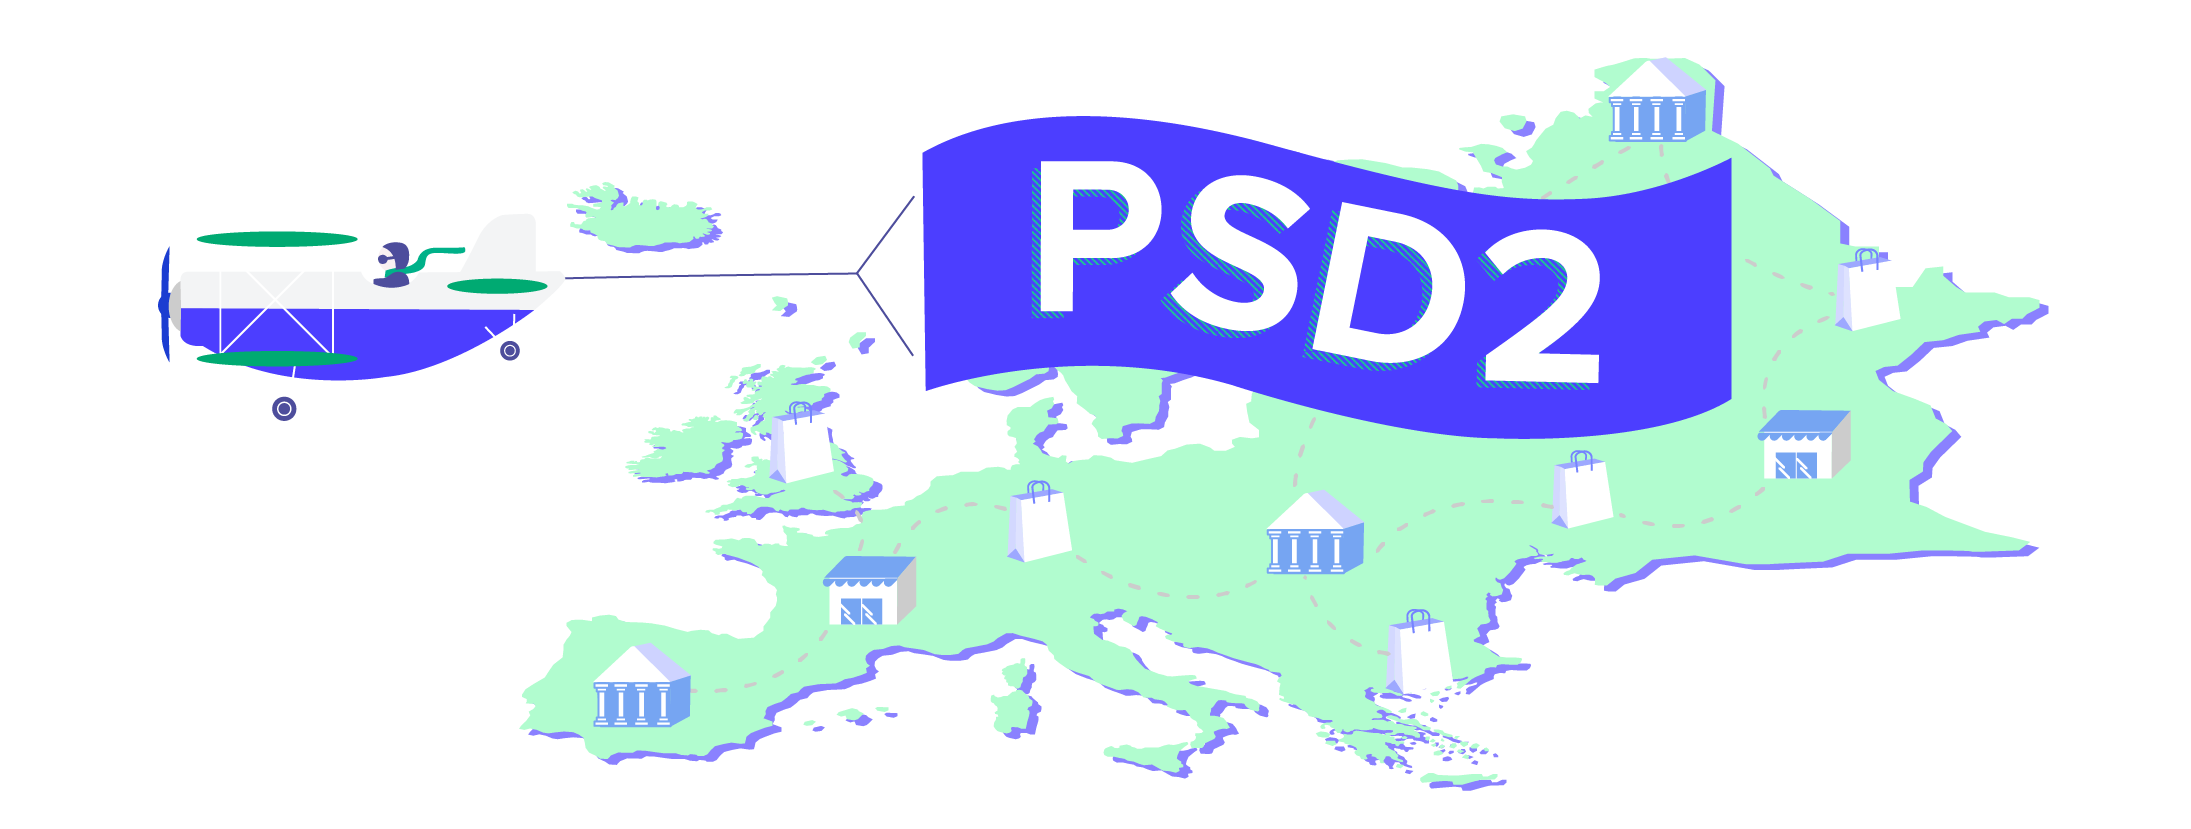 3 Ways to Maintain Control of Customer Experience Under PSD2